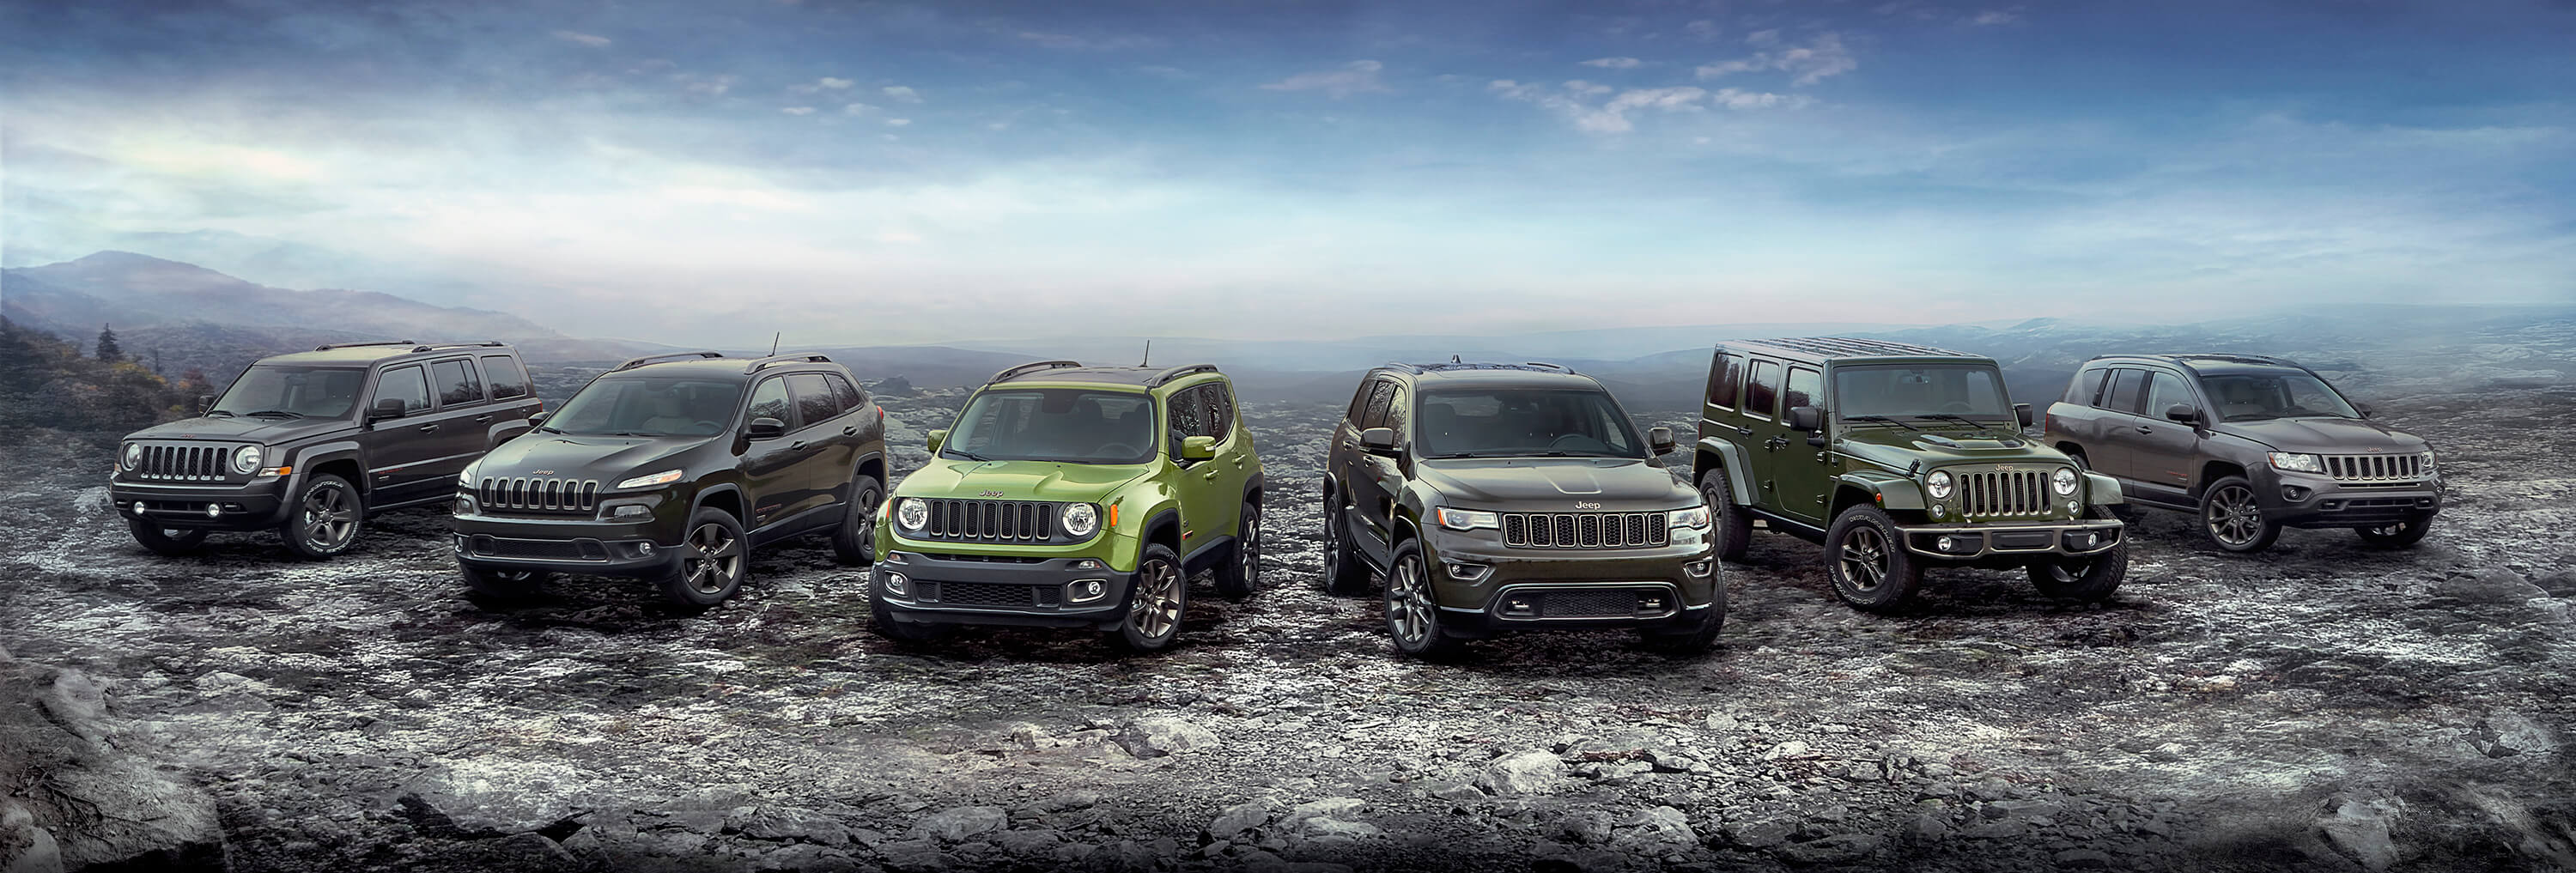 color with edition top match sarge kevinspocket jeep wrangler green anniversary spotted